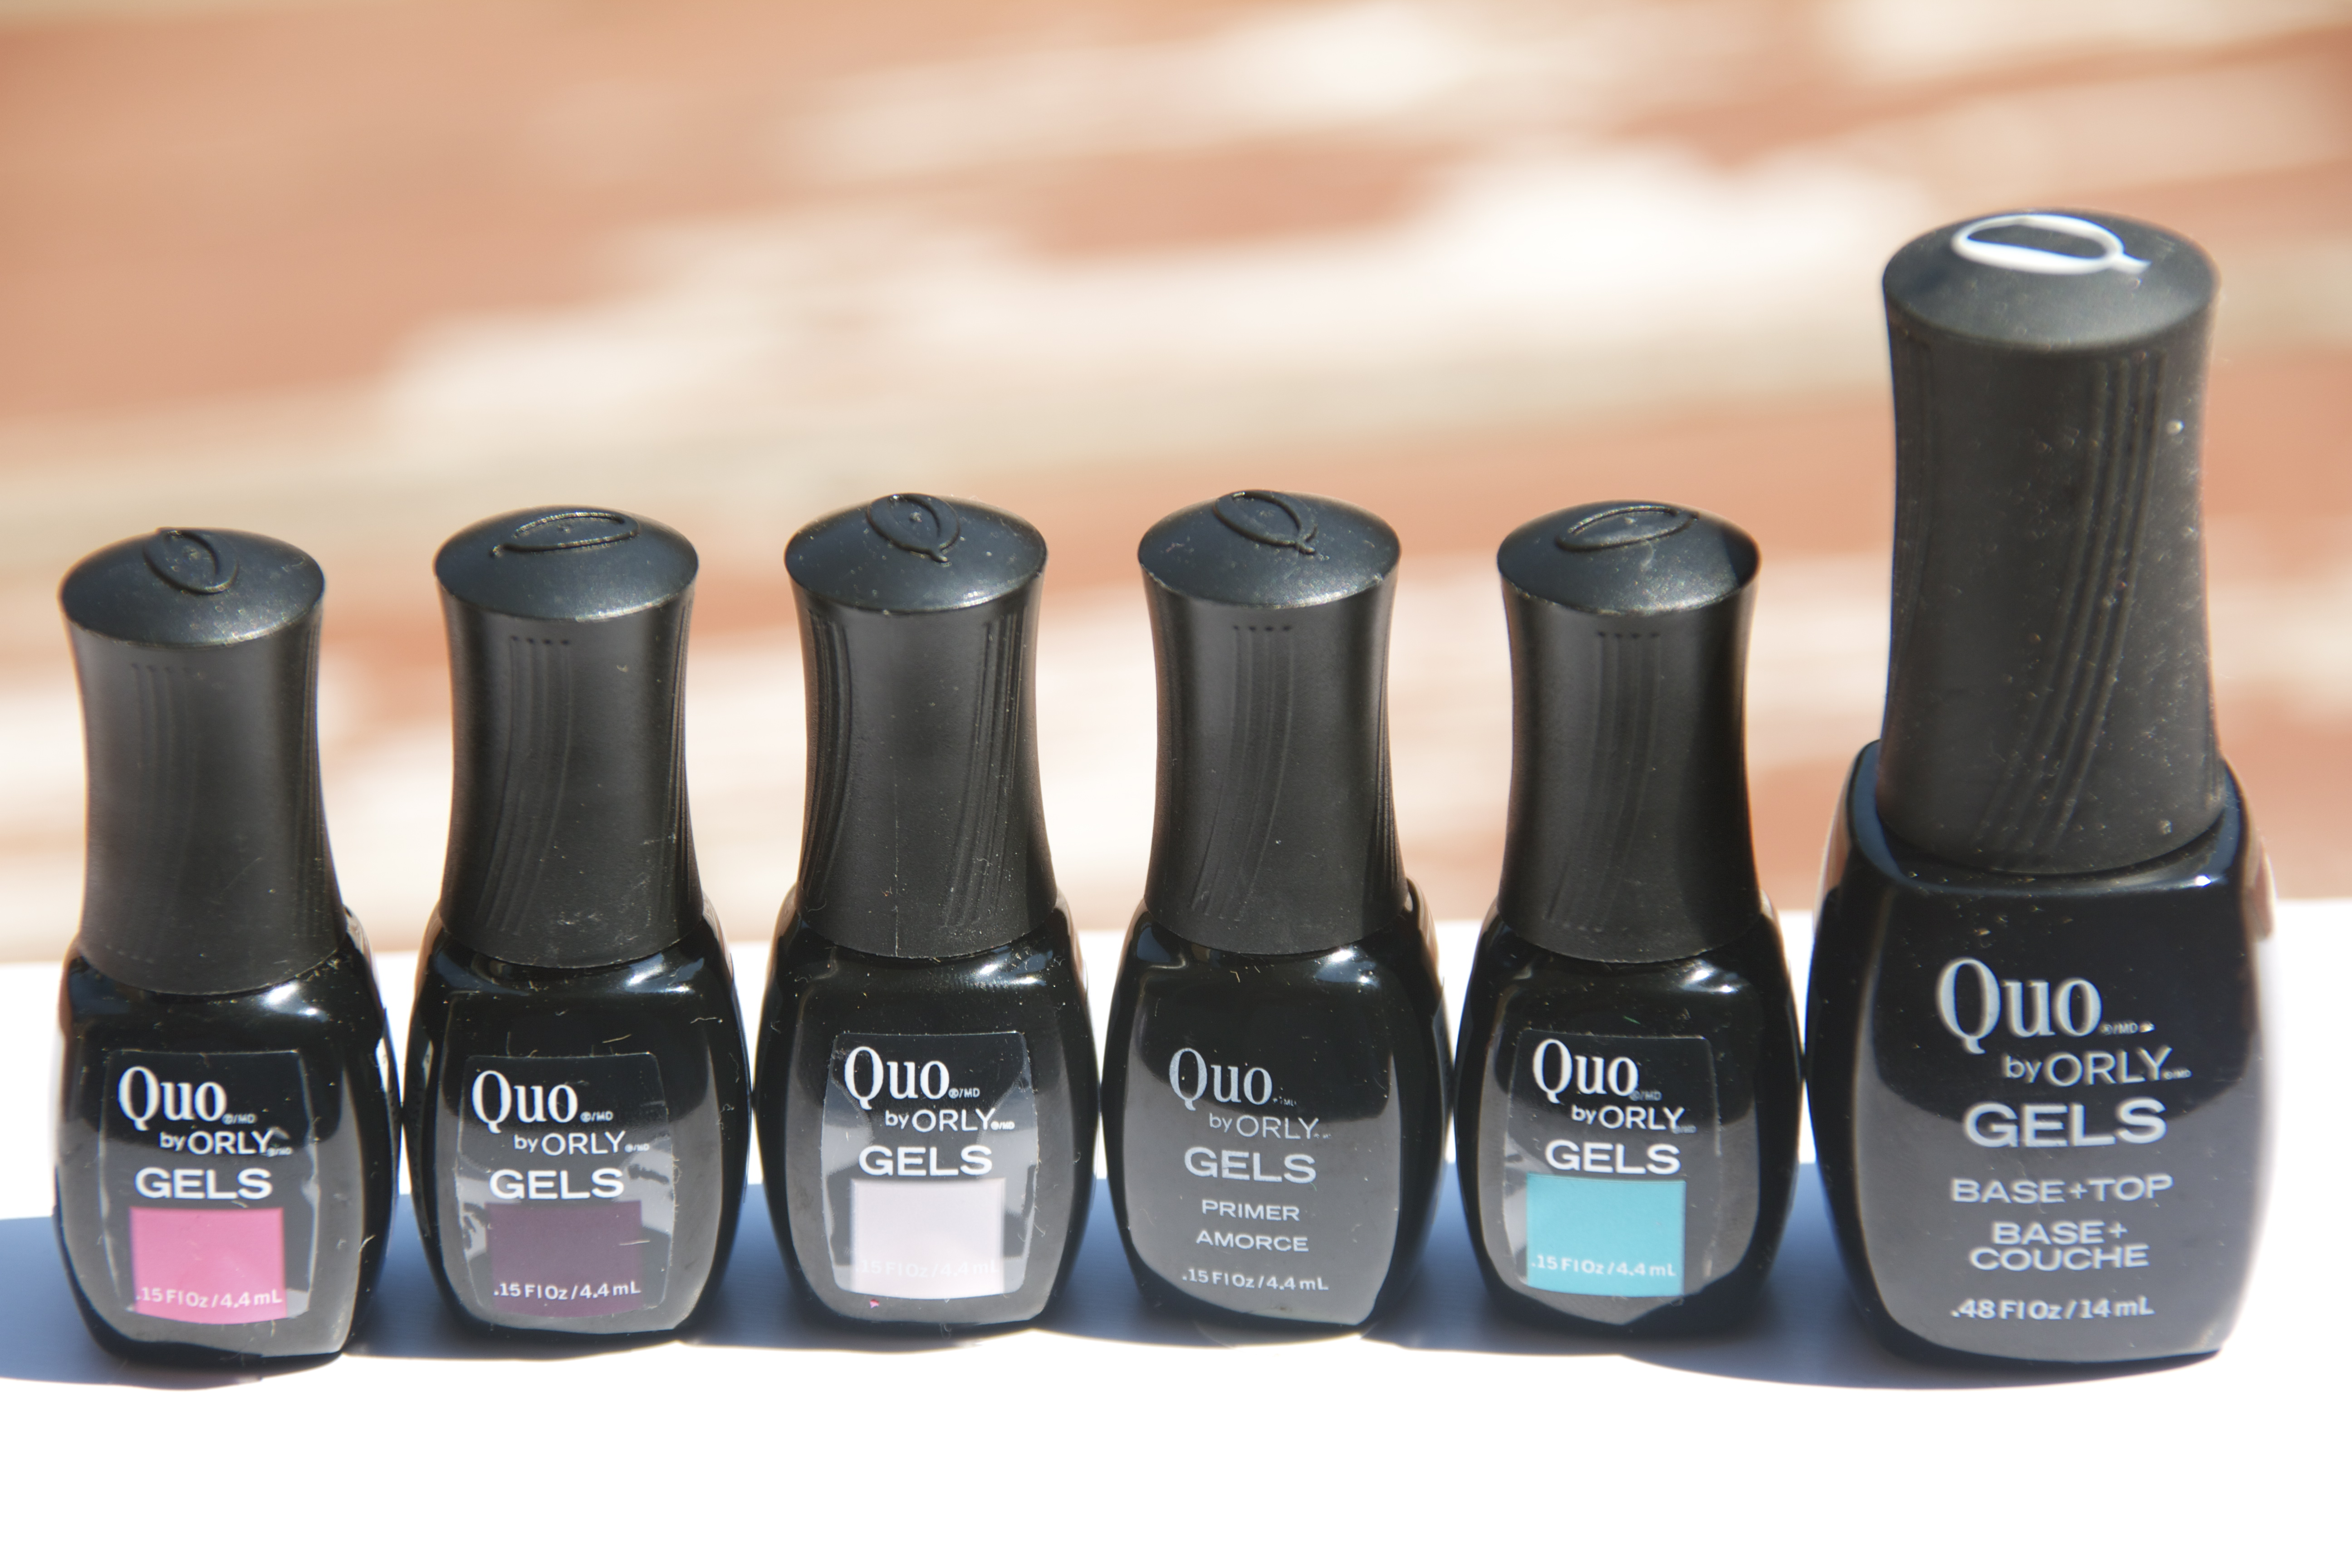 Quo by Orly Gels Nail colour